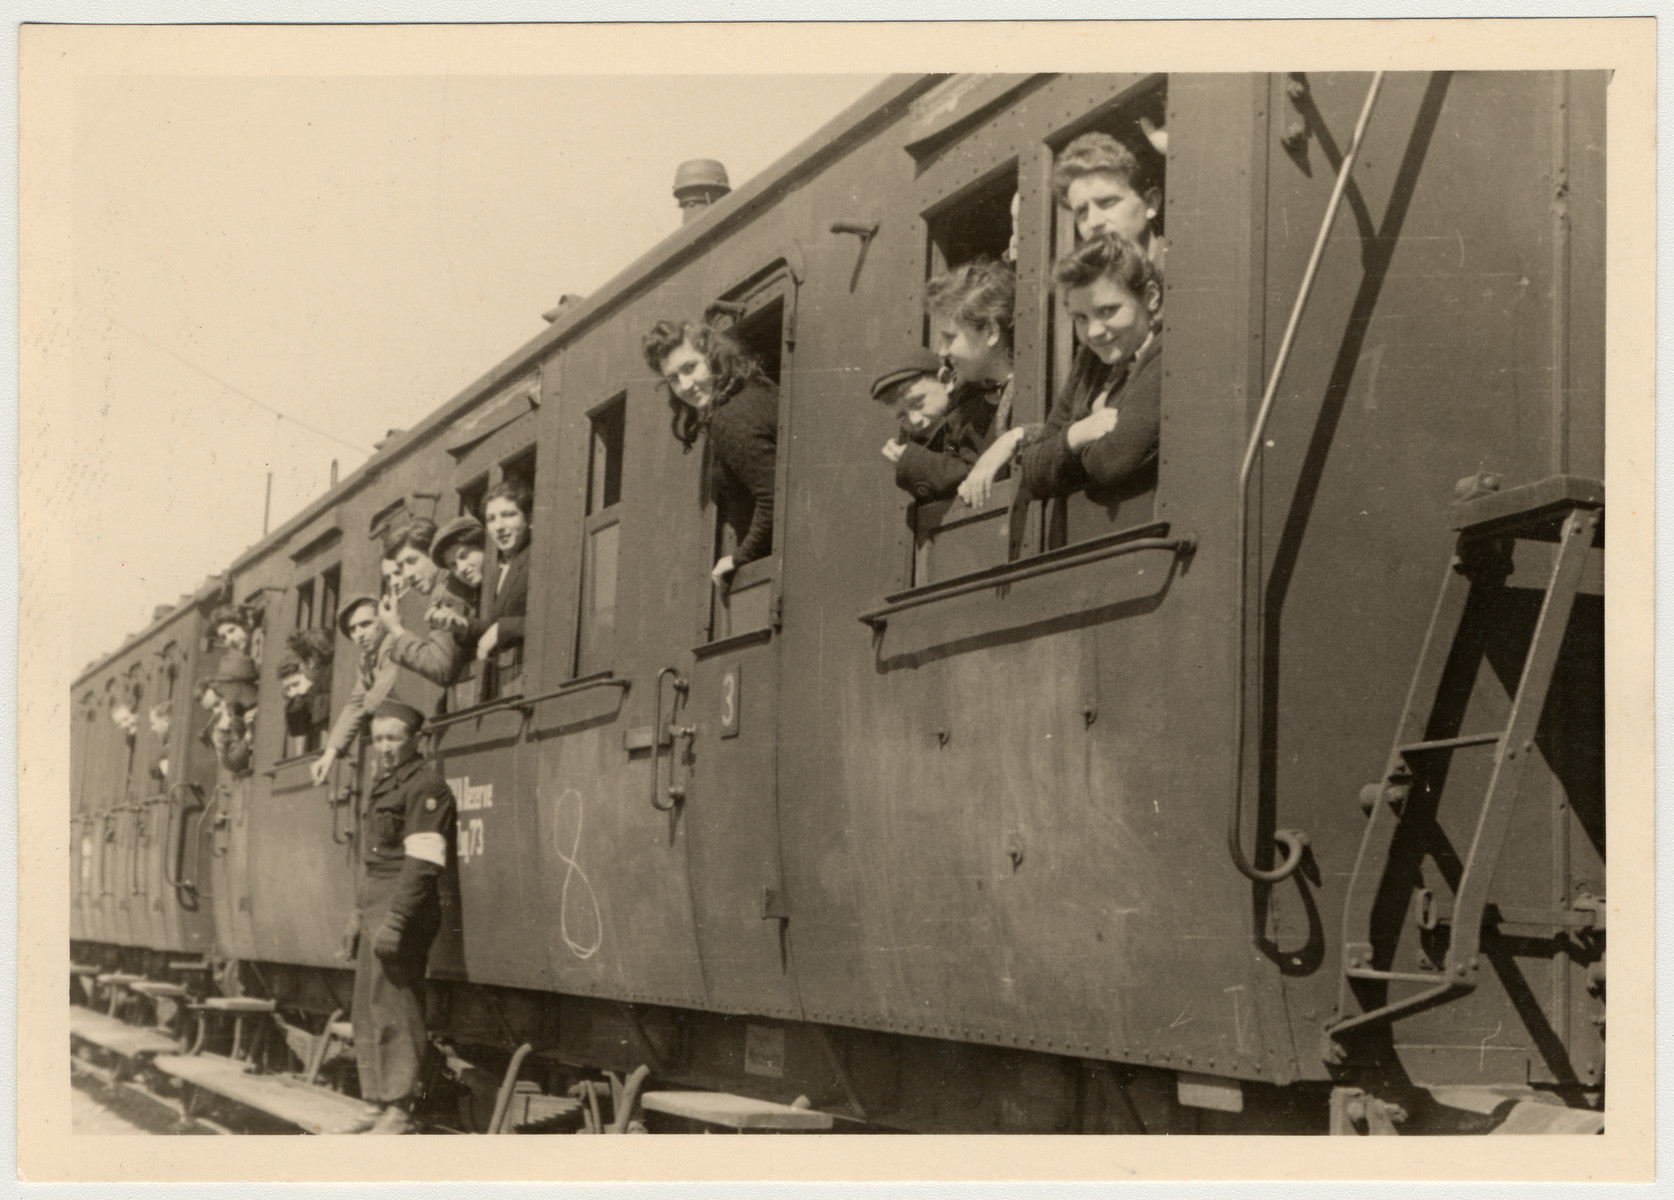 Displaced persons look out the windows of a train as they prepare to return home and be repatriated.